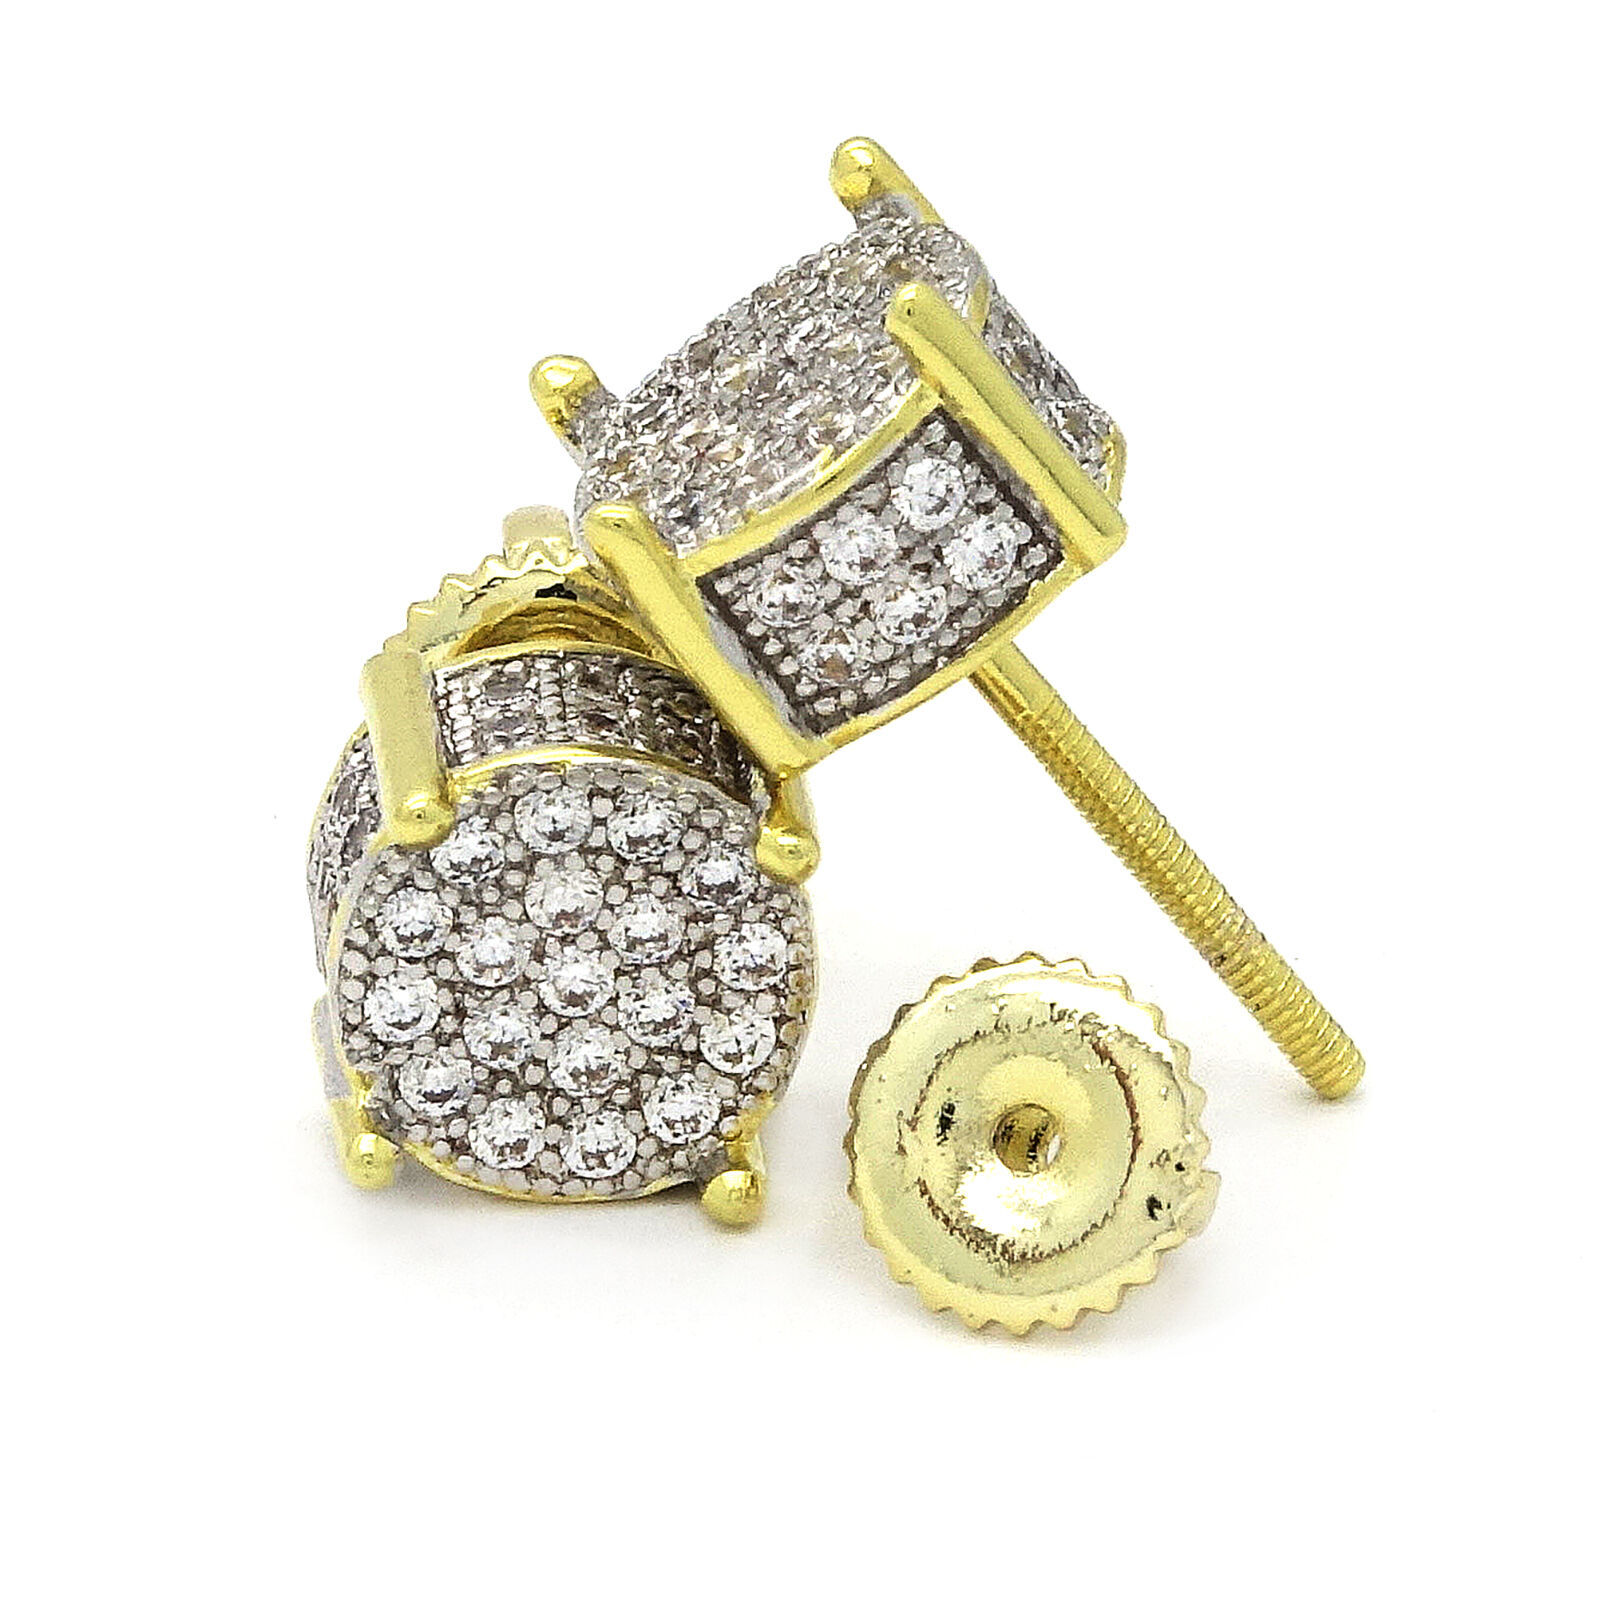 2.10Ct Round Cut VVS1/D Diamond Cluster Hip Hop Earrings 14k Yellow Gold Over